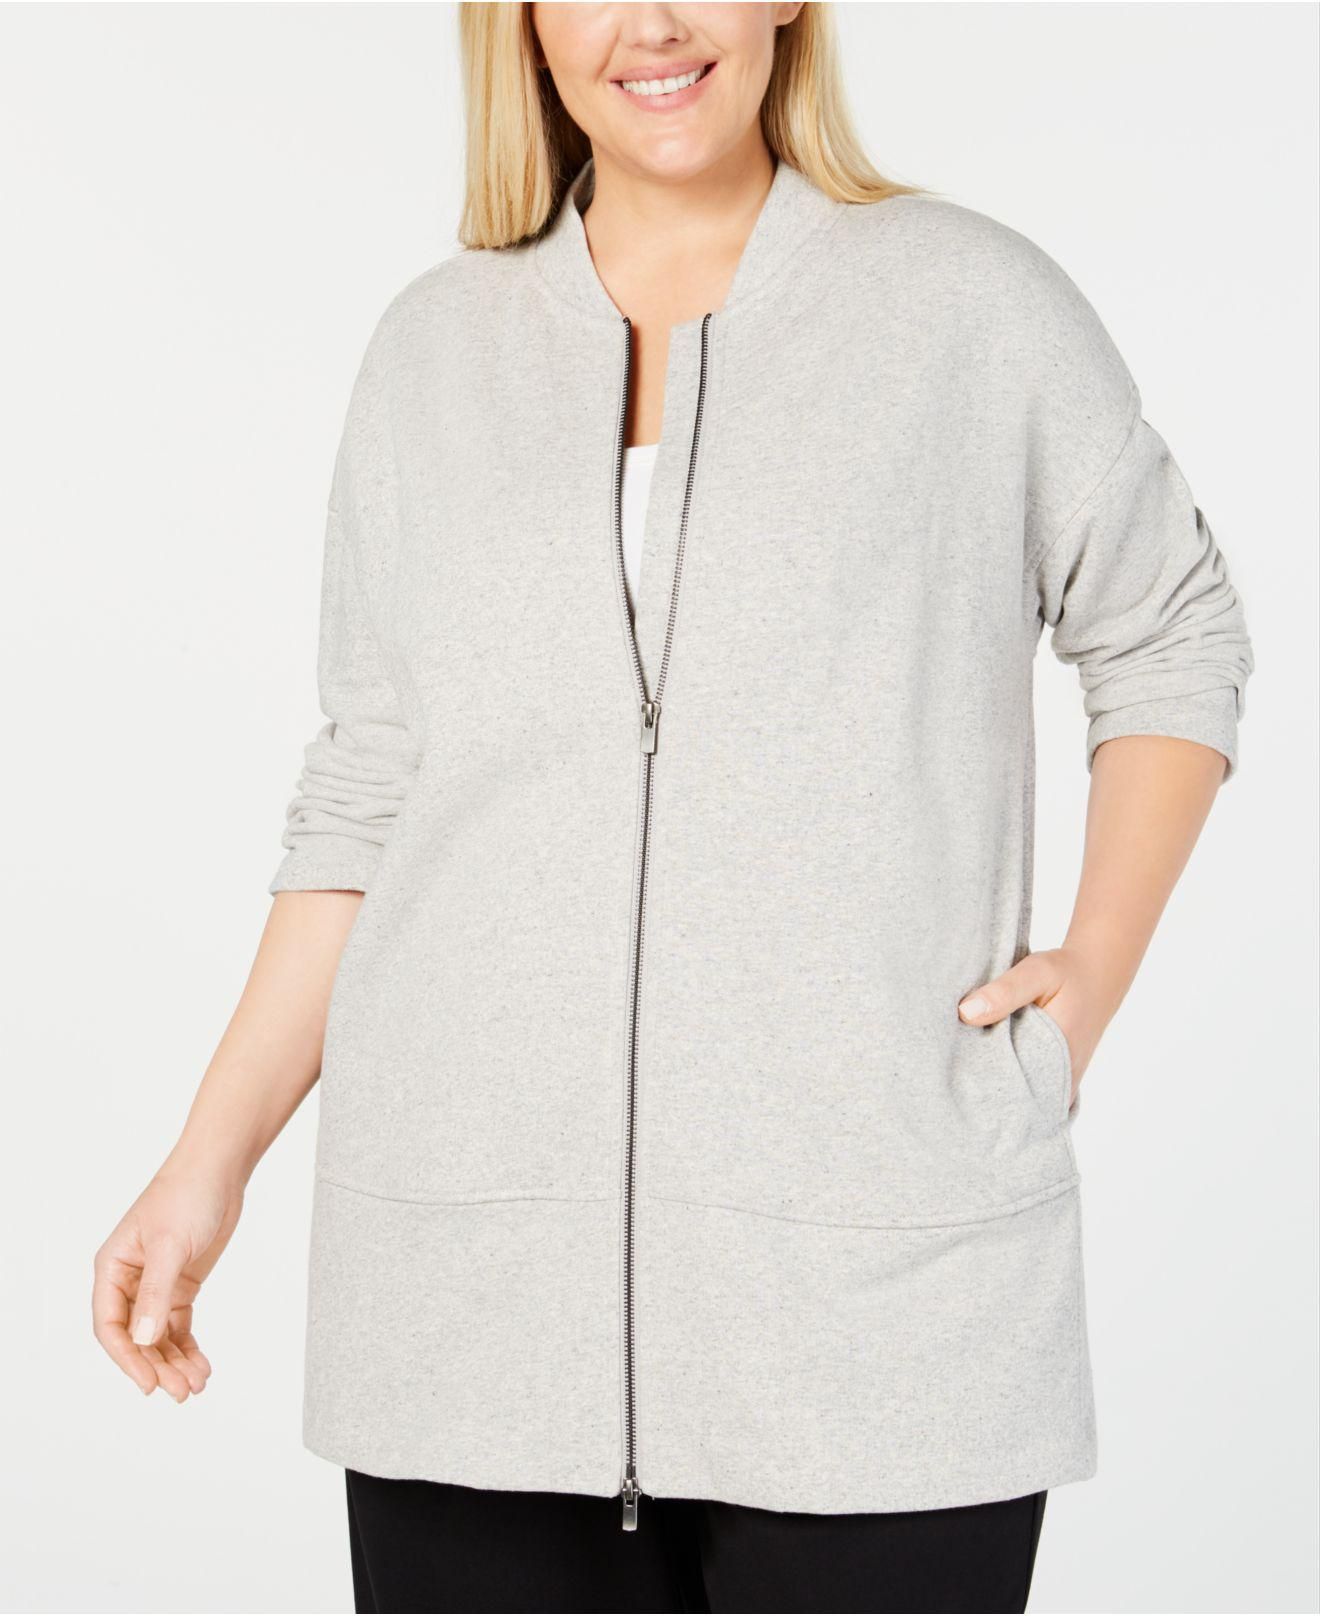 ebaefd62fc7 Lyst - Eileen Fisher Plus Size Cotton Terry Zippered Jacket in White